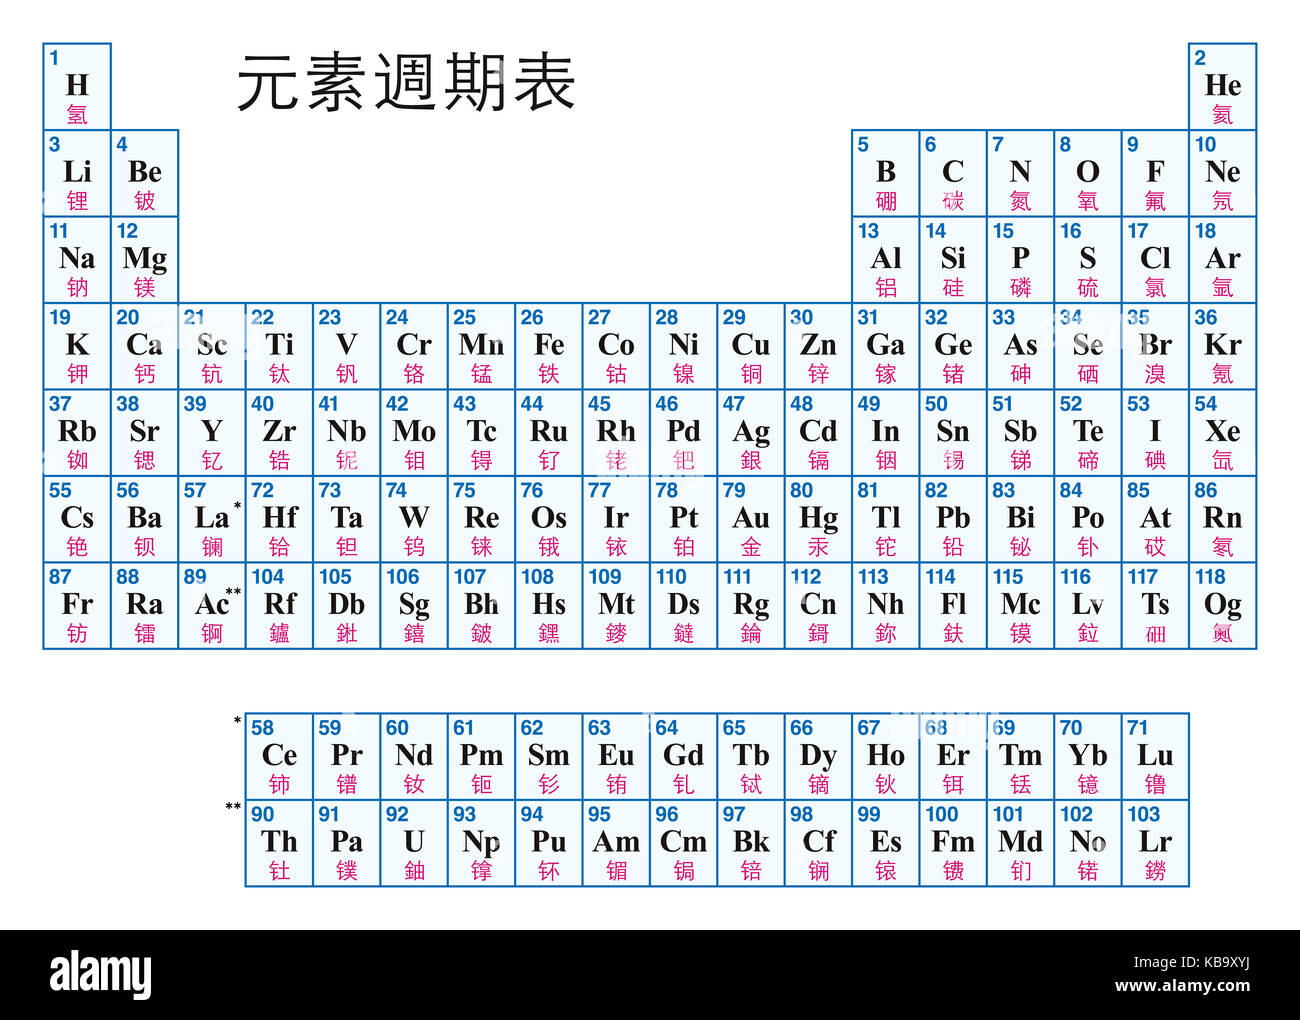 Periodic Table Of The Elements Chinese Tabular Arrangement Of